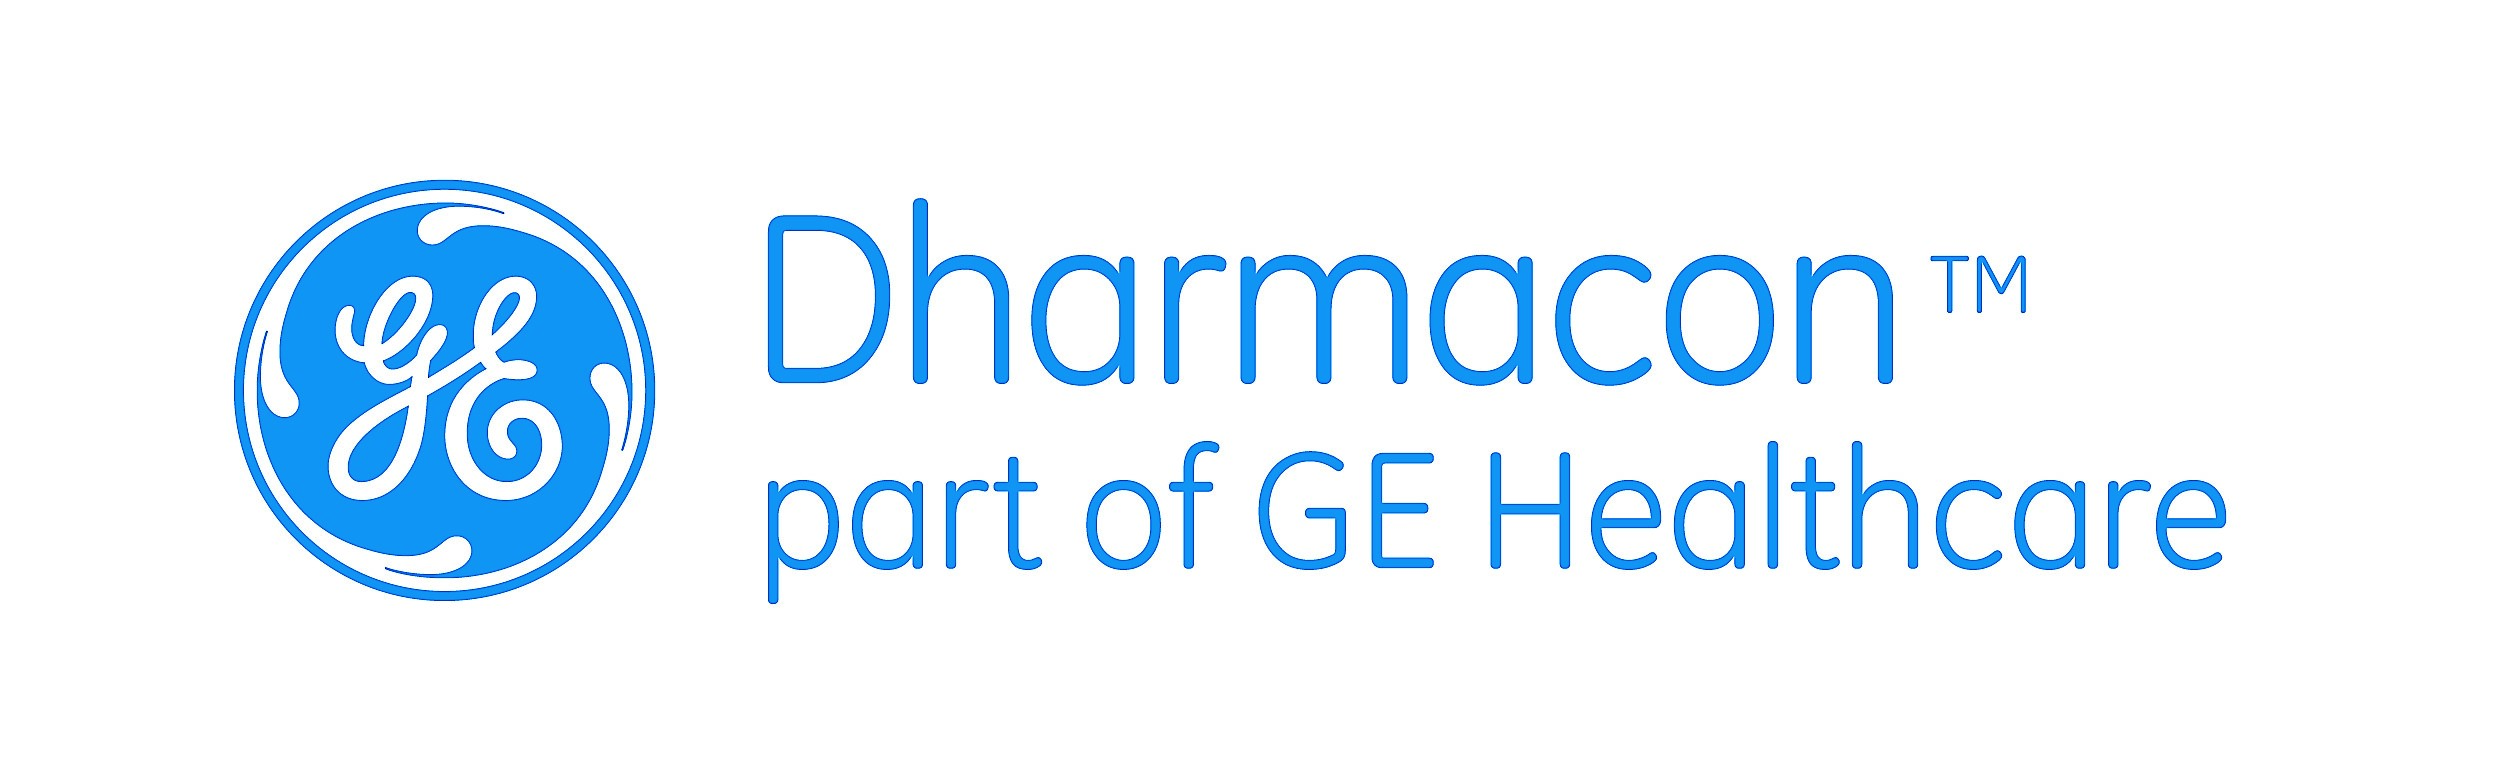 GE Healthcare dharmacon-part-of-ge Logo (JPG)